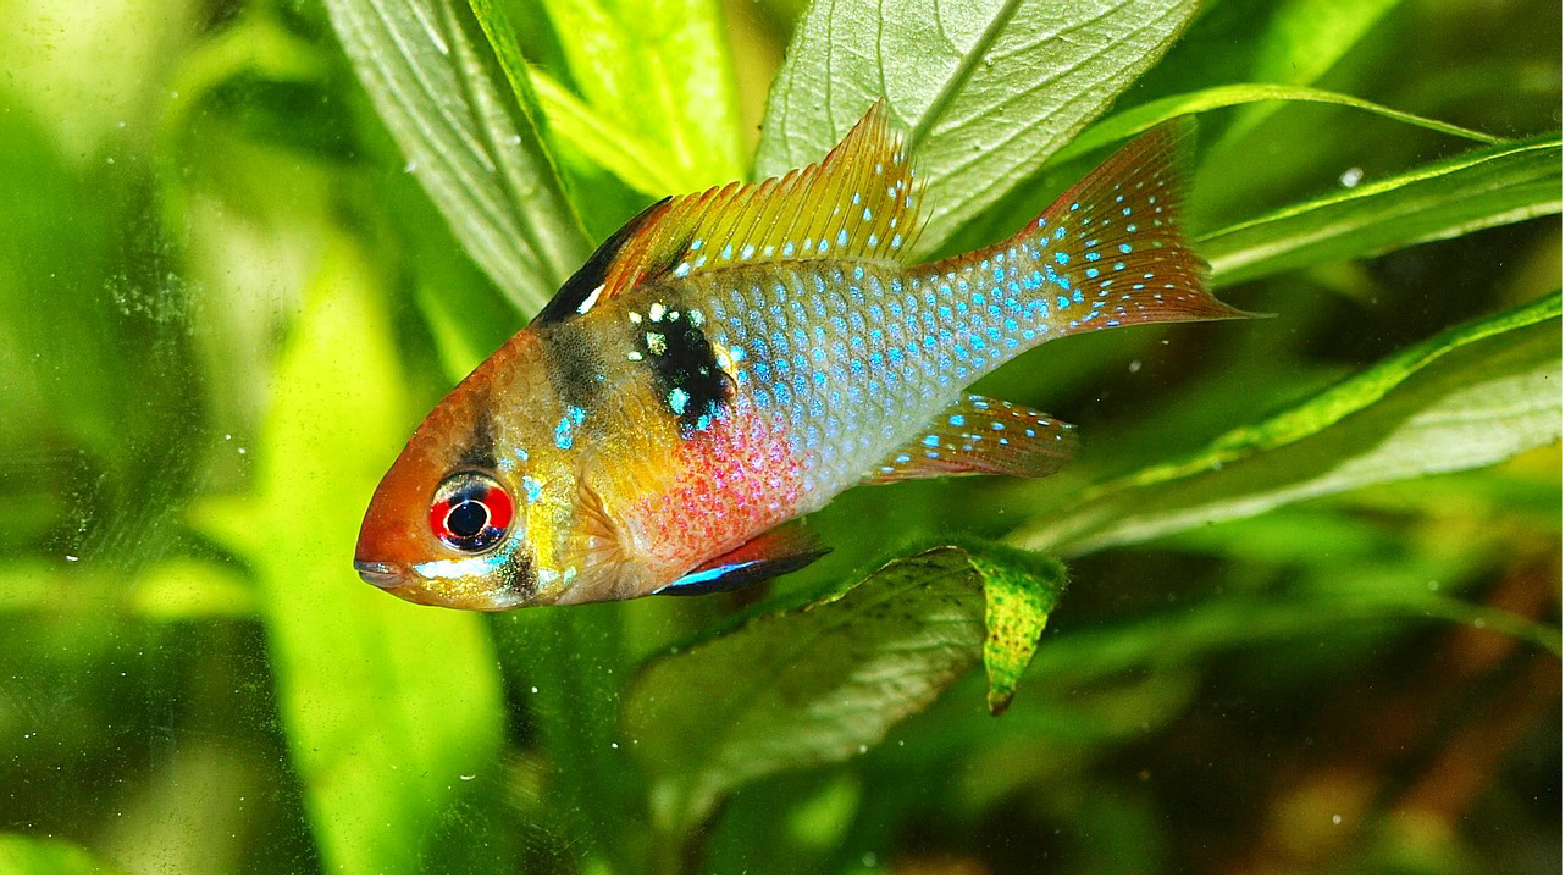 Beautiful Fish Have One Of These That Get Along With My African Cichilids And Am Afraid Of Thinking Of Putting Cichlids Saltwater Aquarium Fish Aquarium Fish